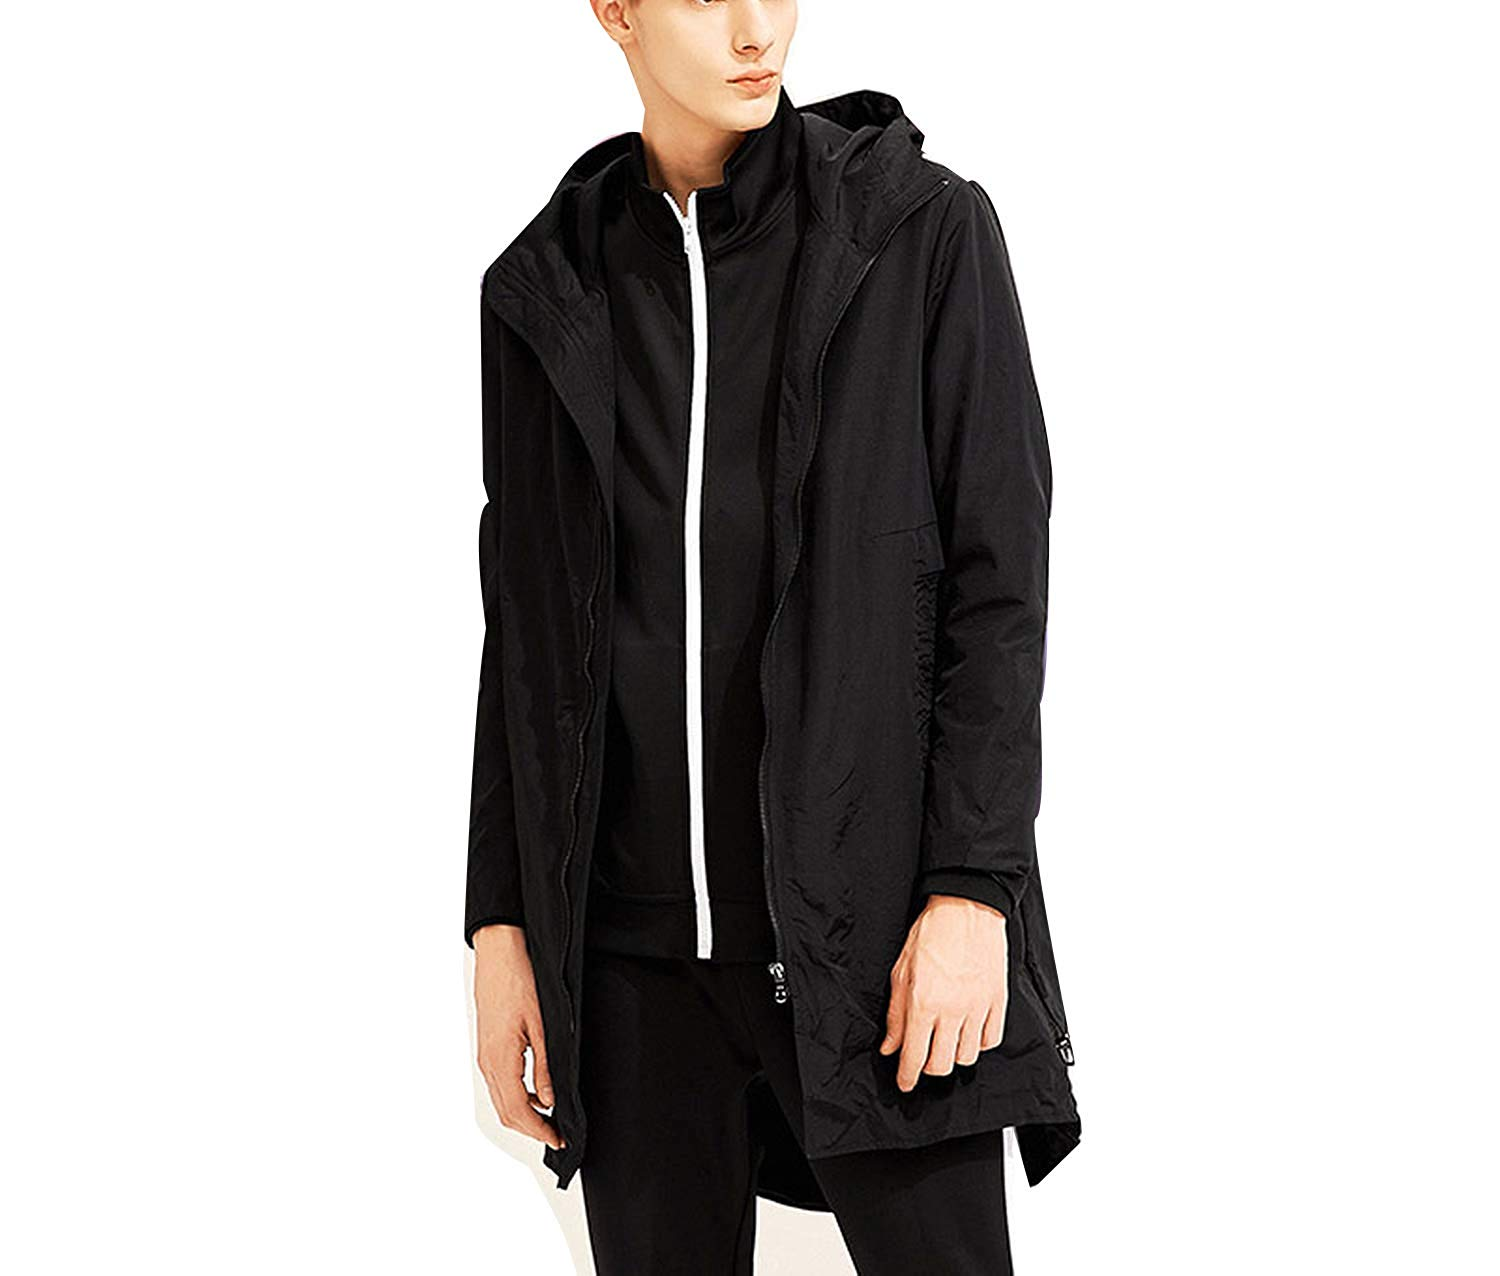 a56744bef Cheap Full Length Hooded Coat Mens, find Full Length Hooded Coat ...